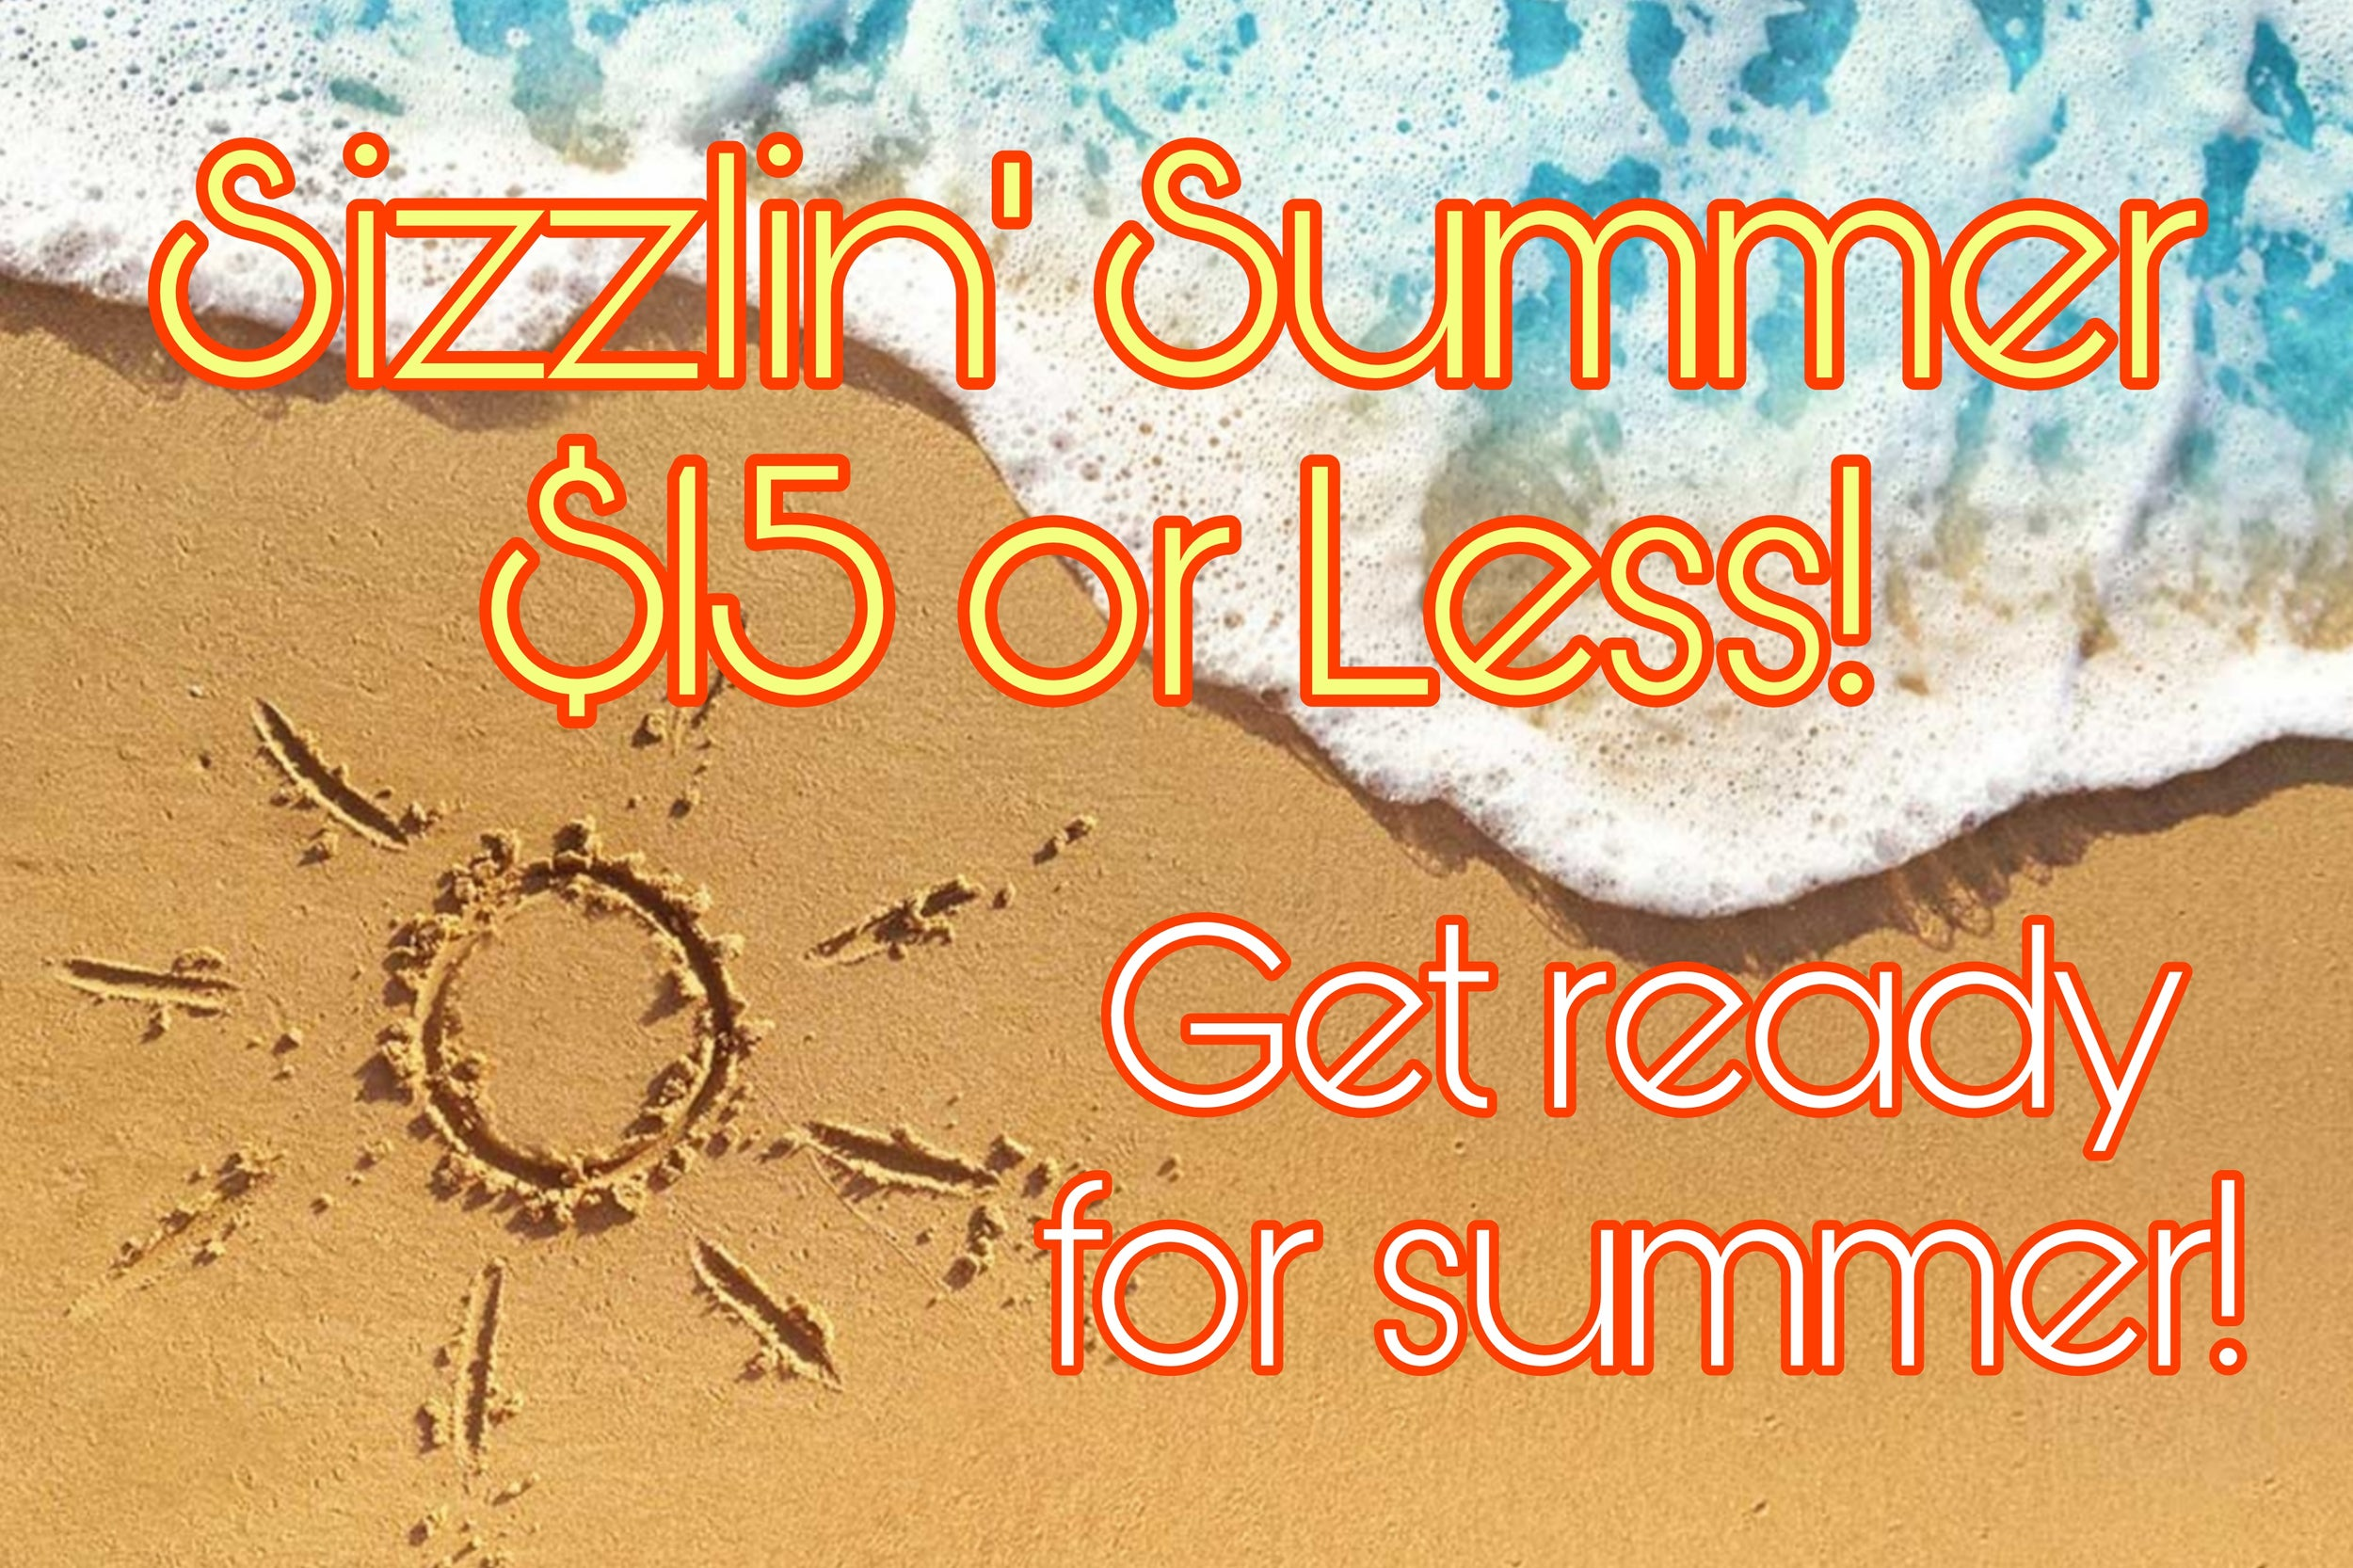 Sizzlin' Summer $15 or Less!